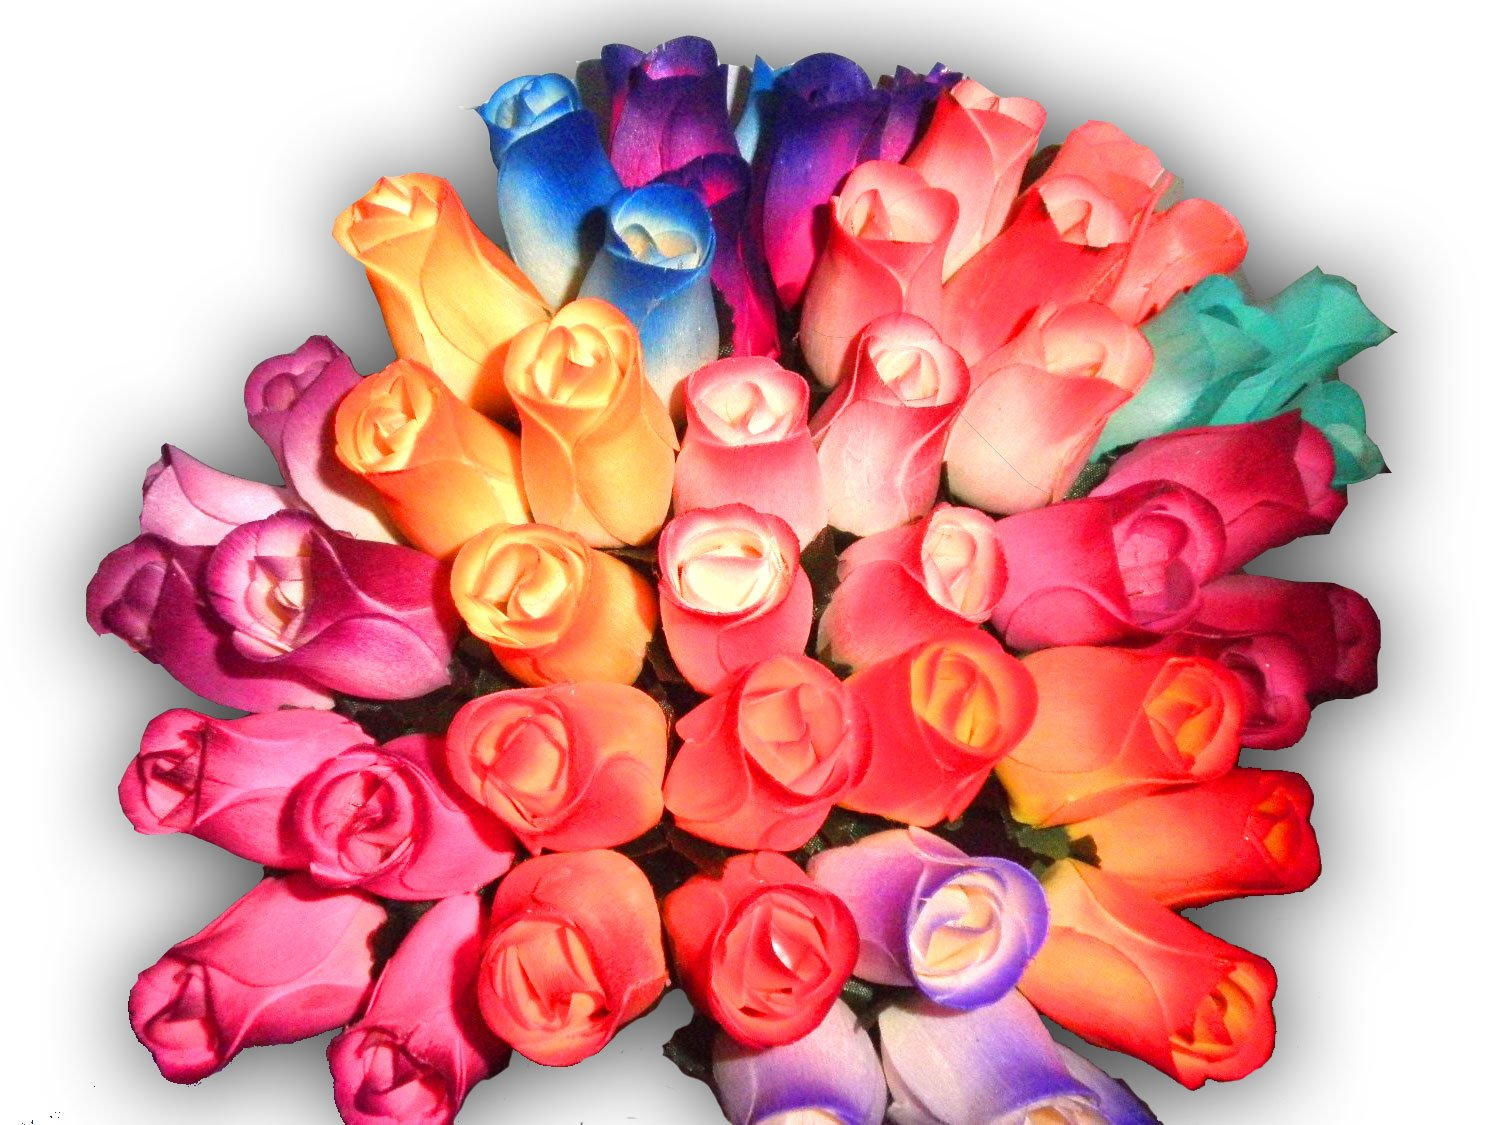 2 Dozen (24) Wooden Roses Colorful Arrangement in Sleeve by Forever Wood Roses (Image #1)